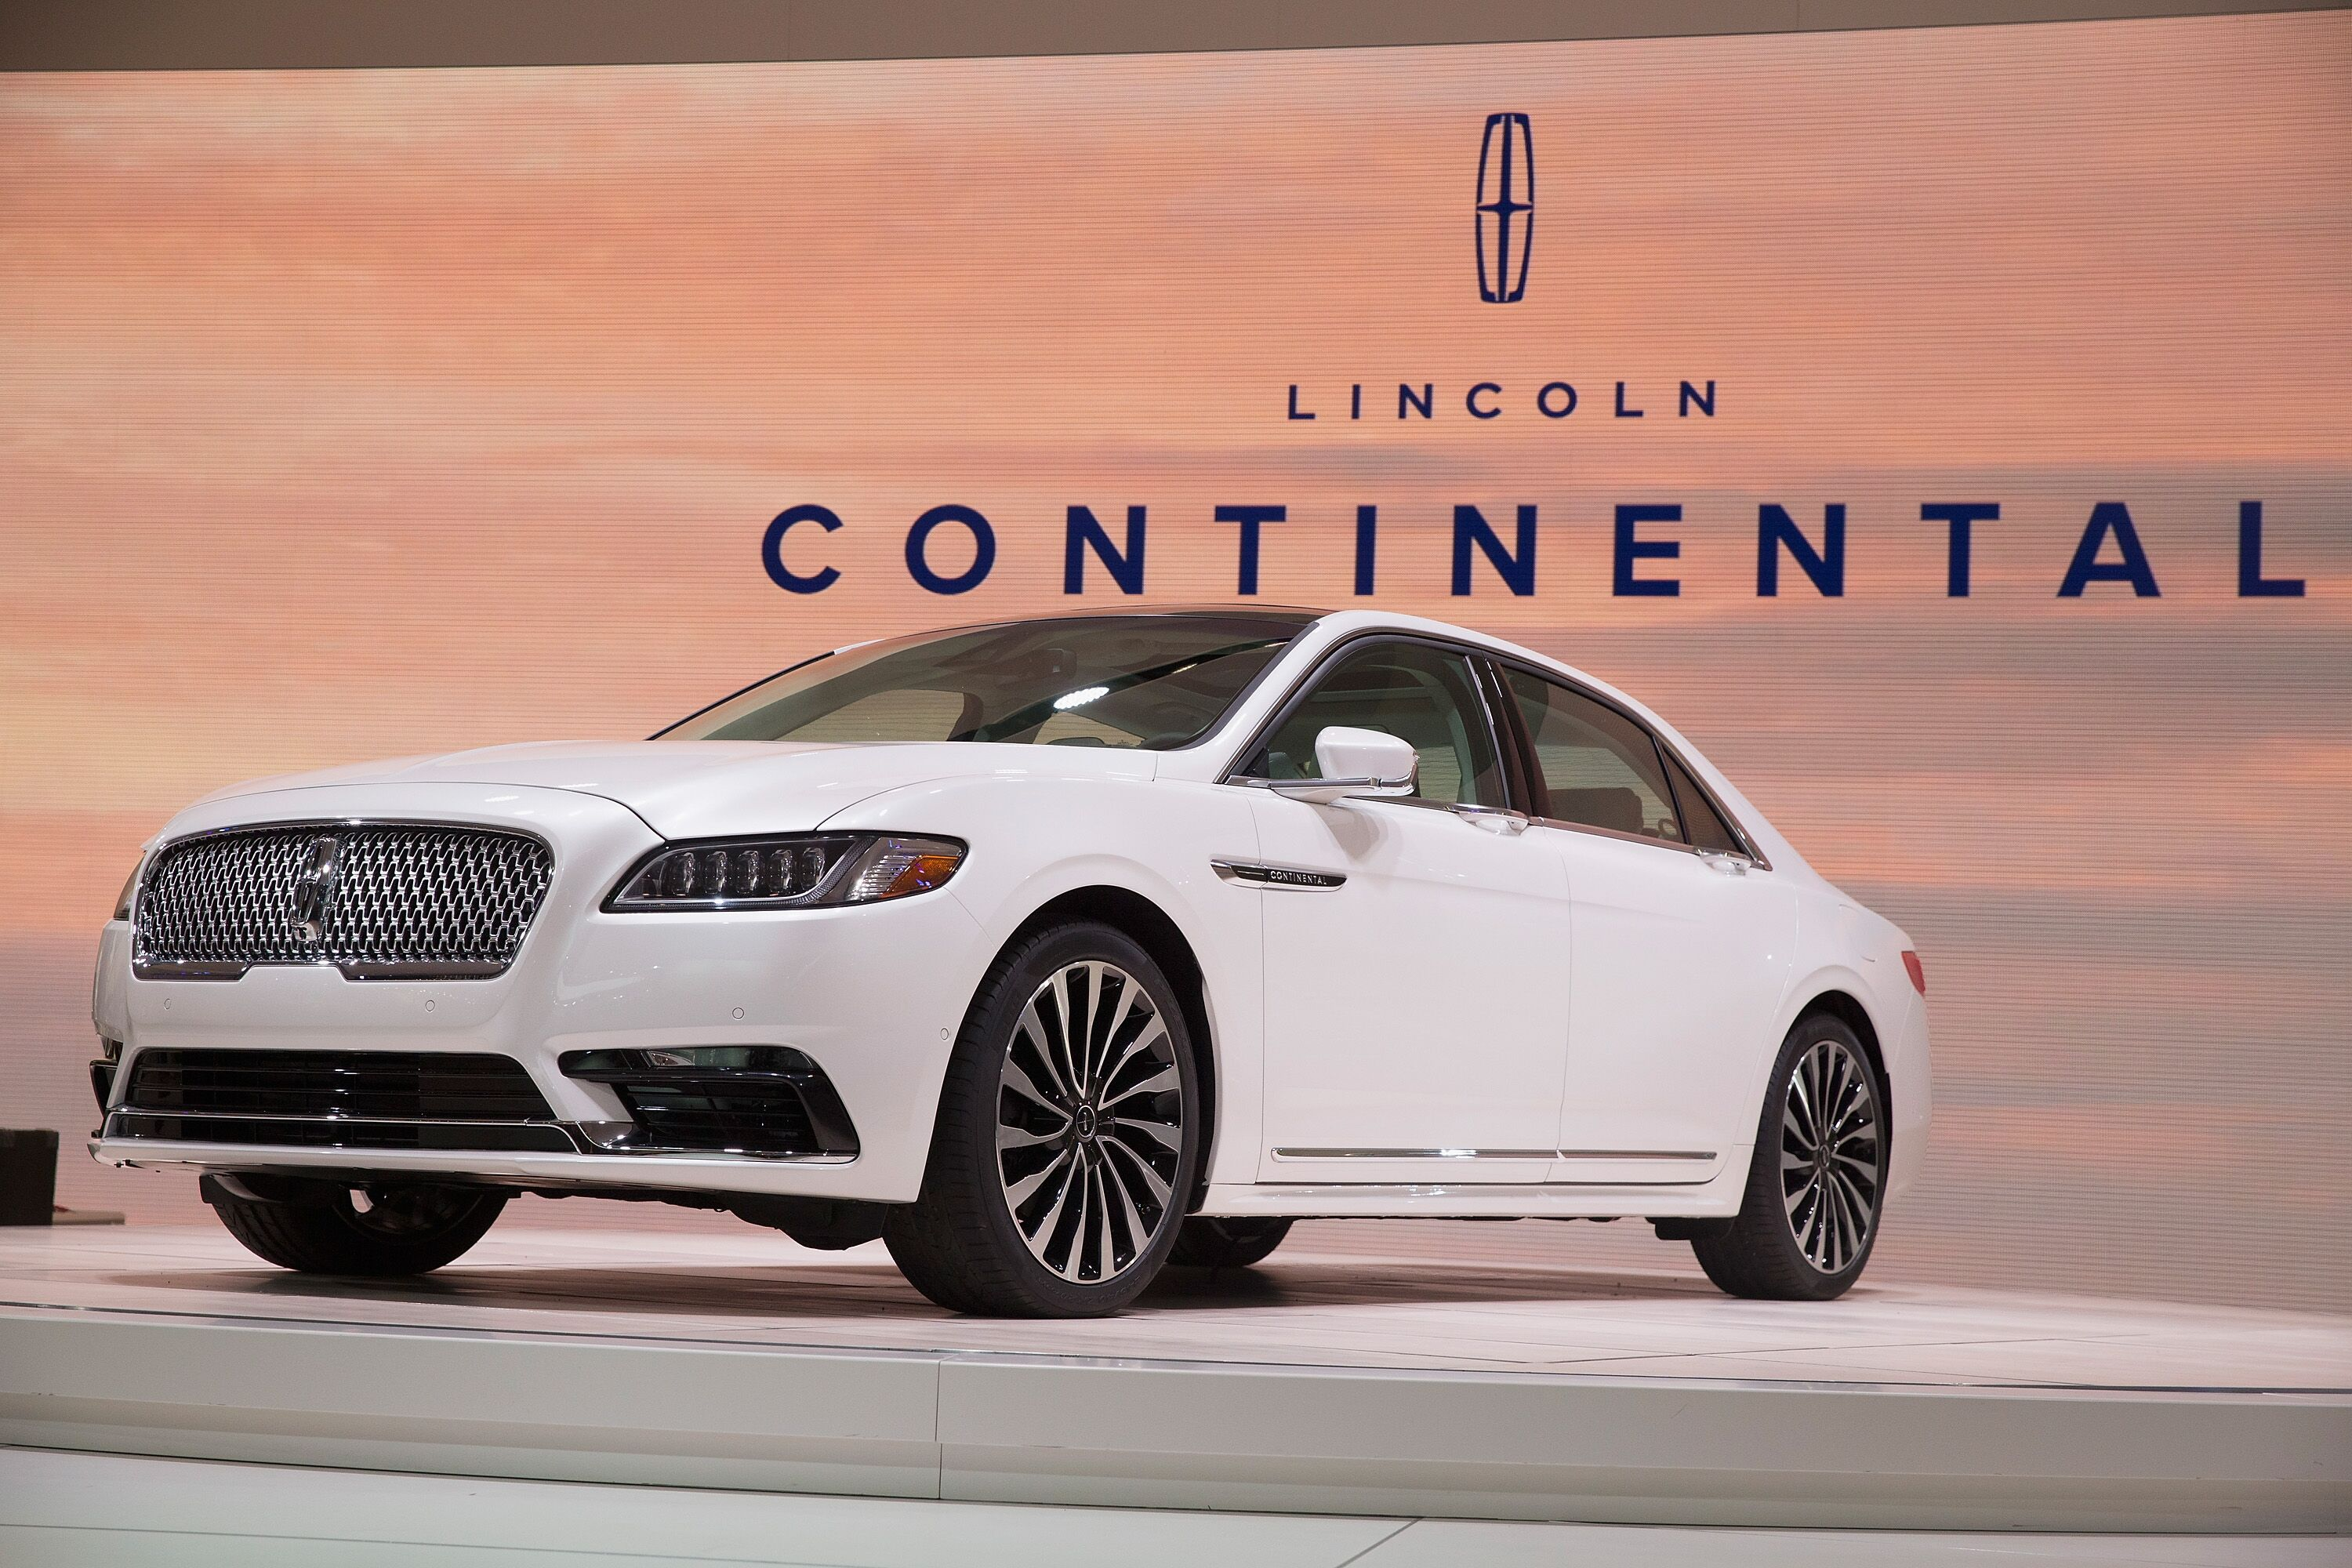 The Lincoln Continental Limited Edition with Suicide Doors